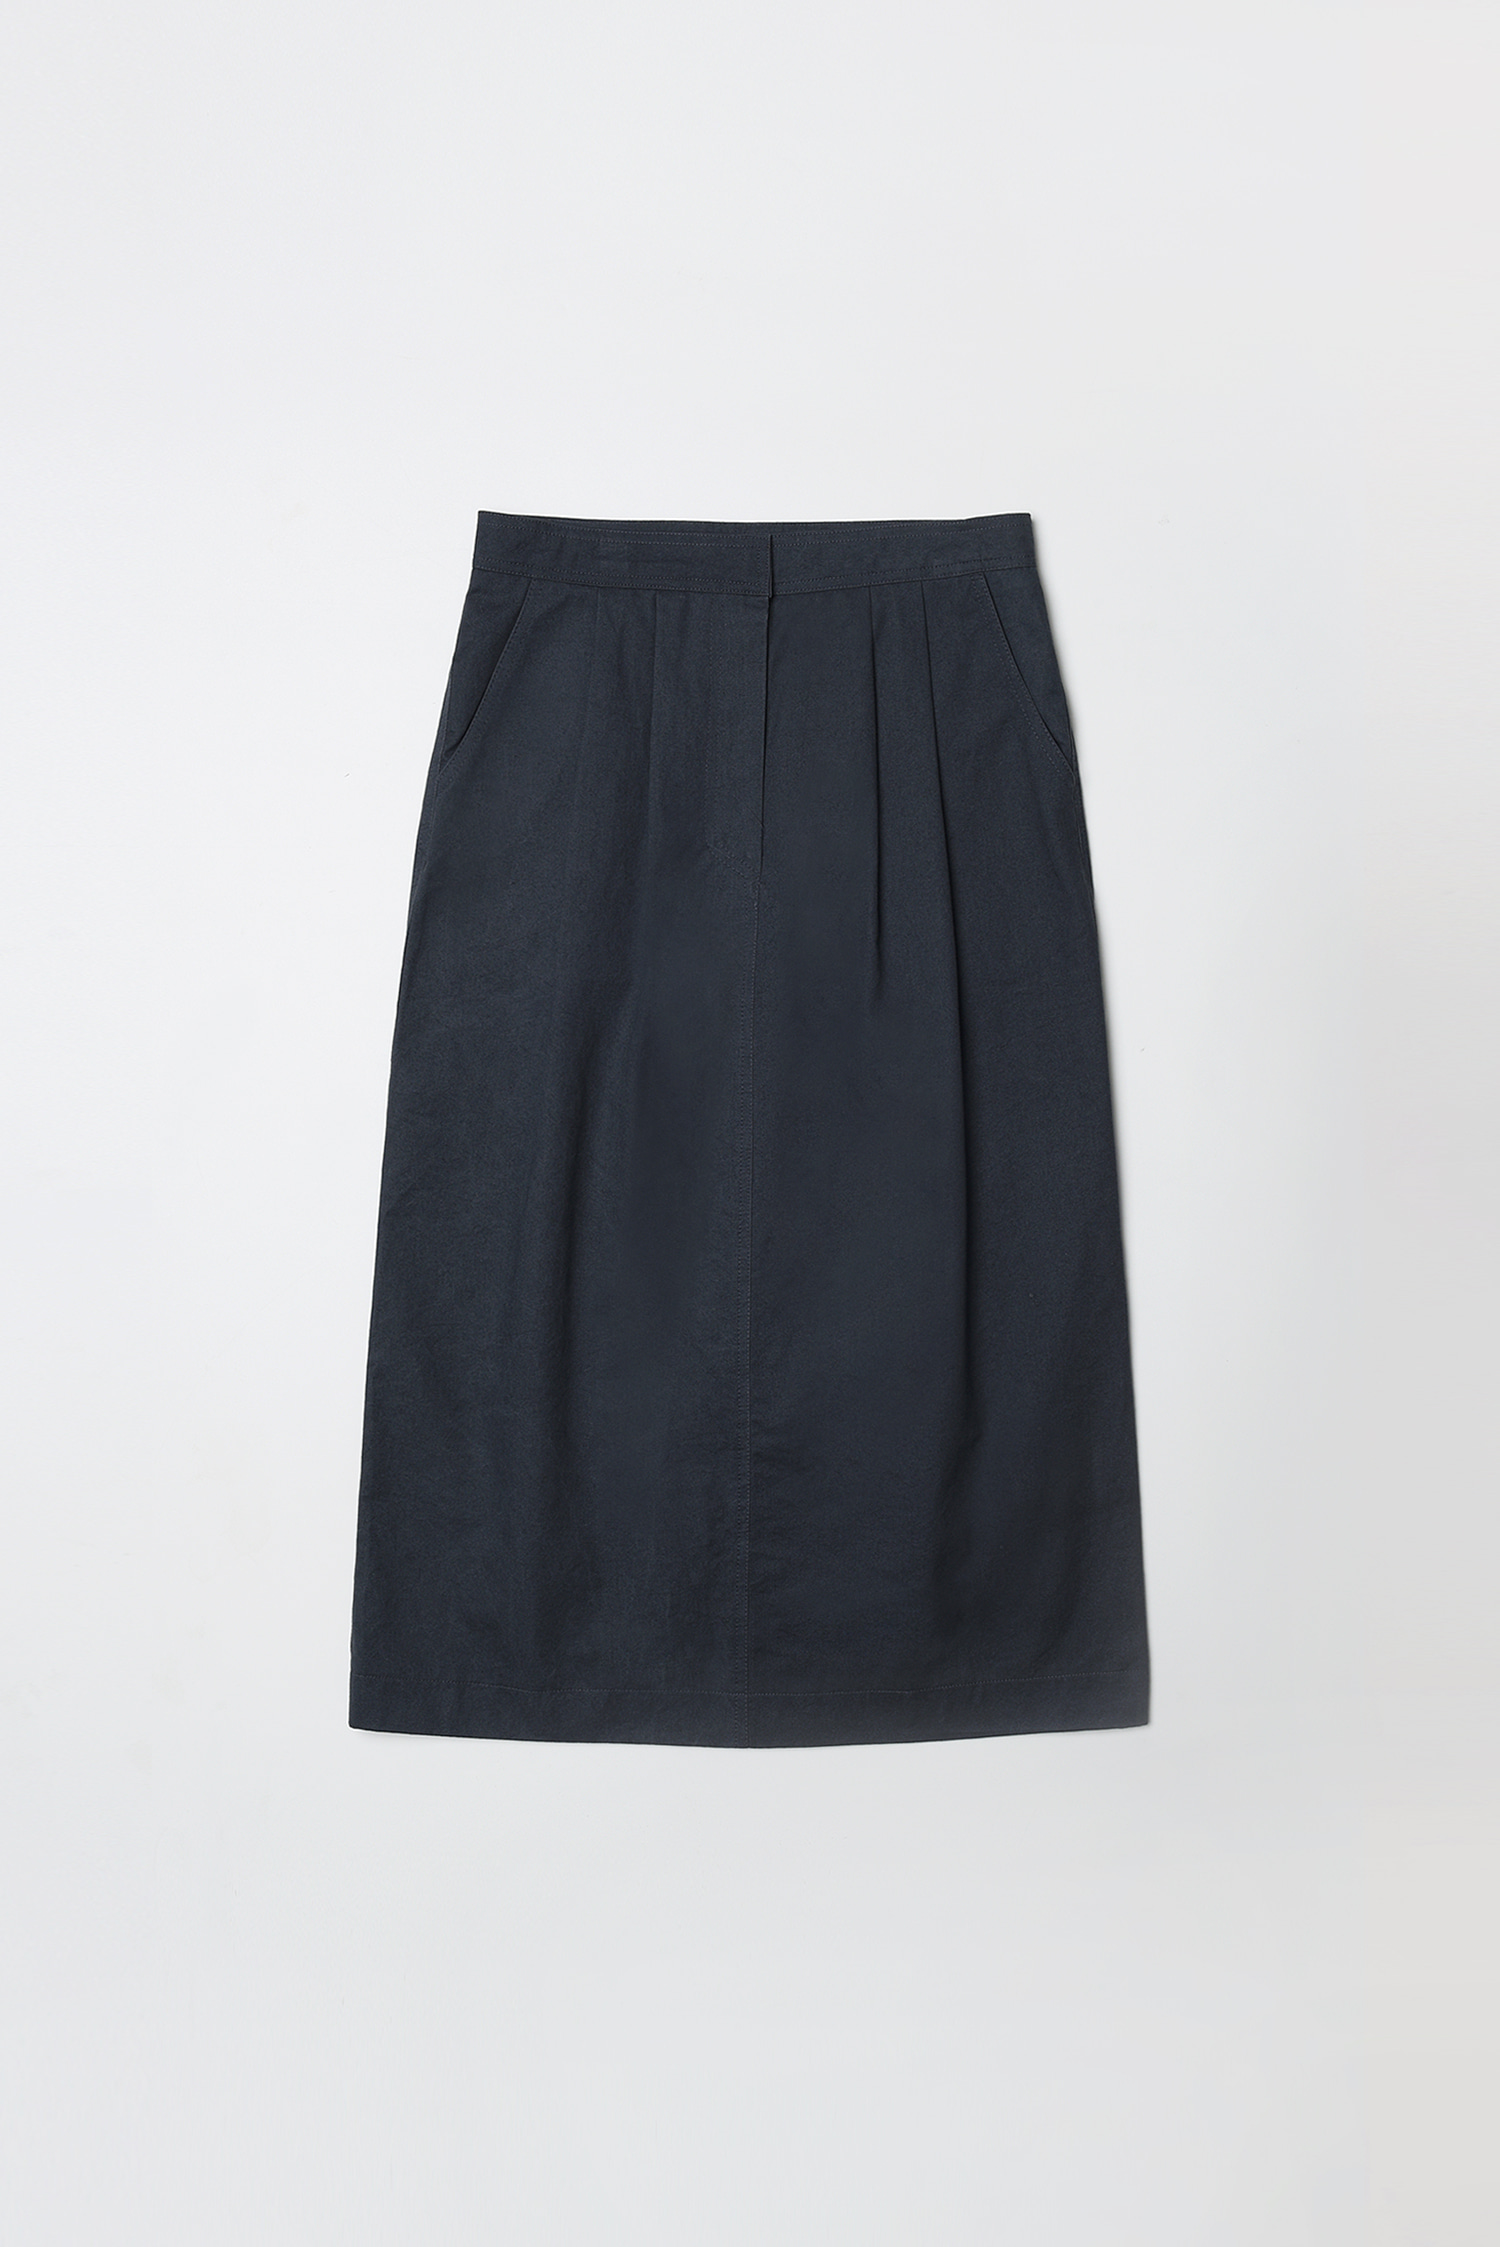 Tuck skirt (dark navy)